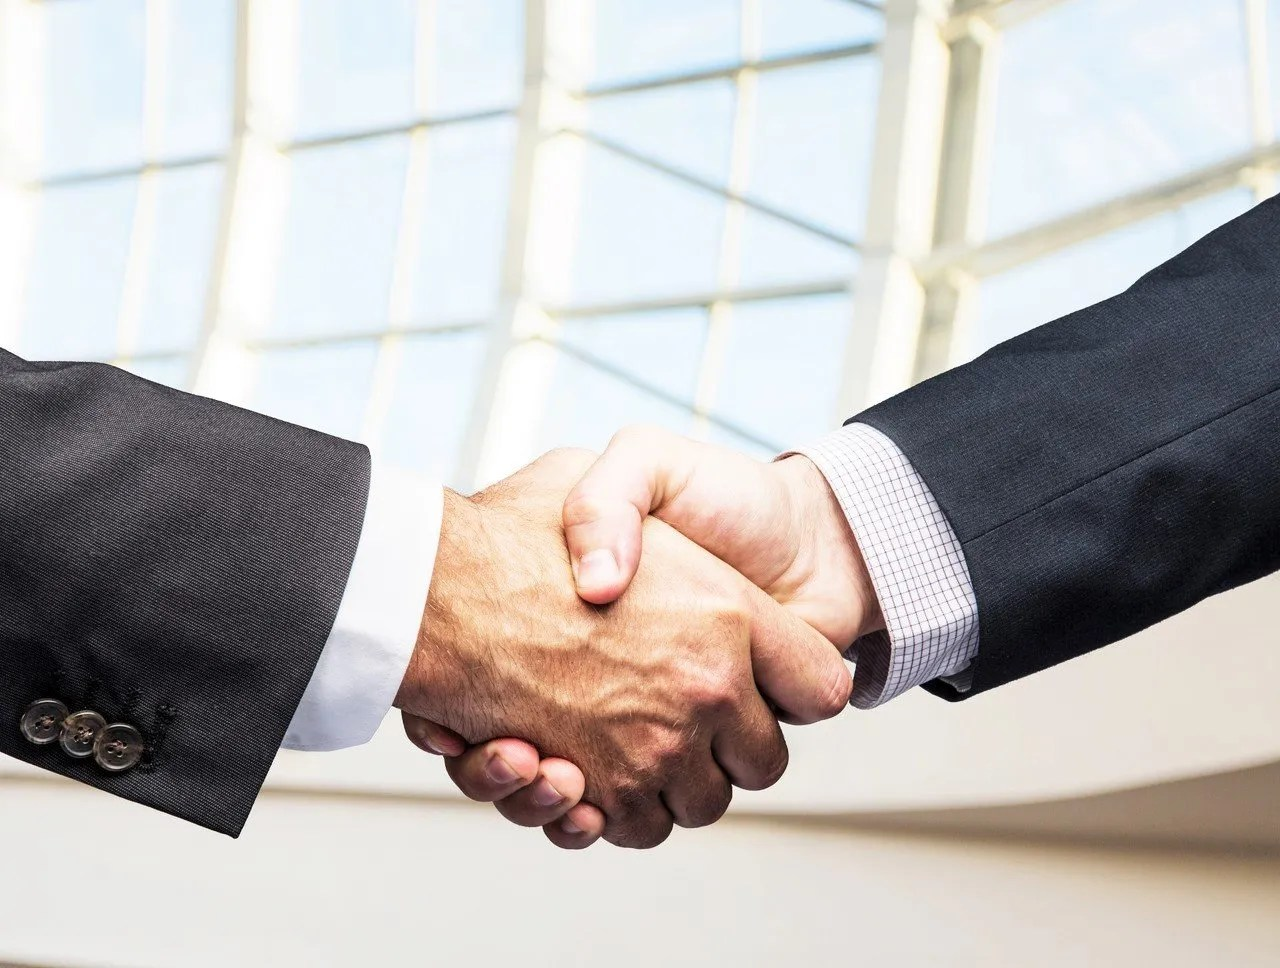 WHO signs MOU with International Generic and Biosimilar Medicines Association to promote access